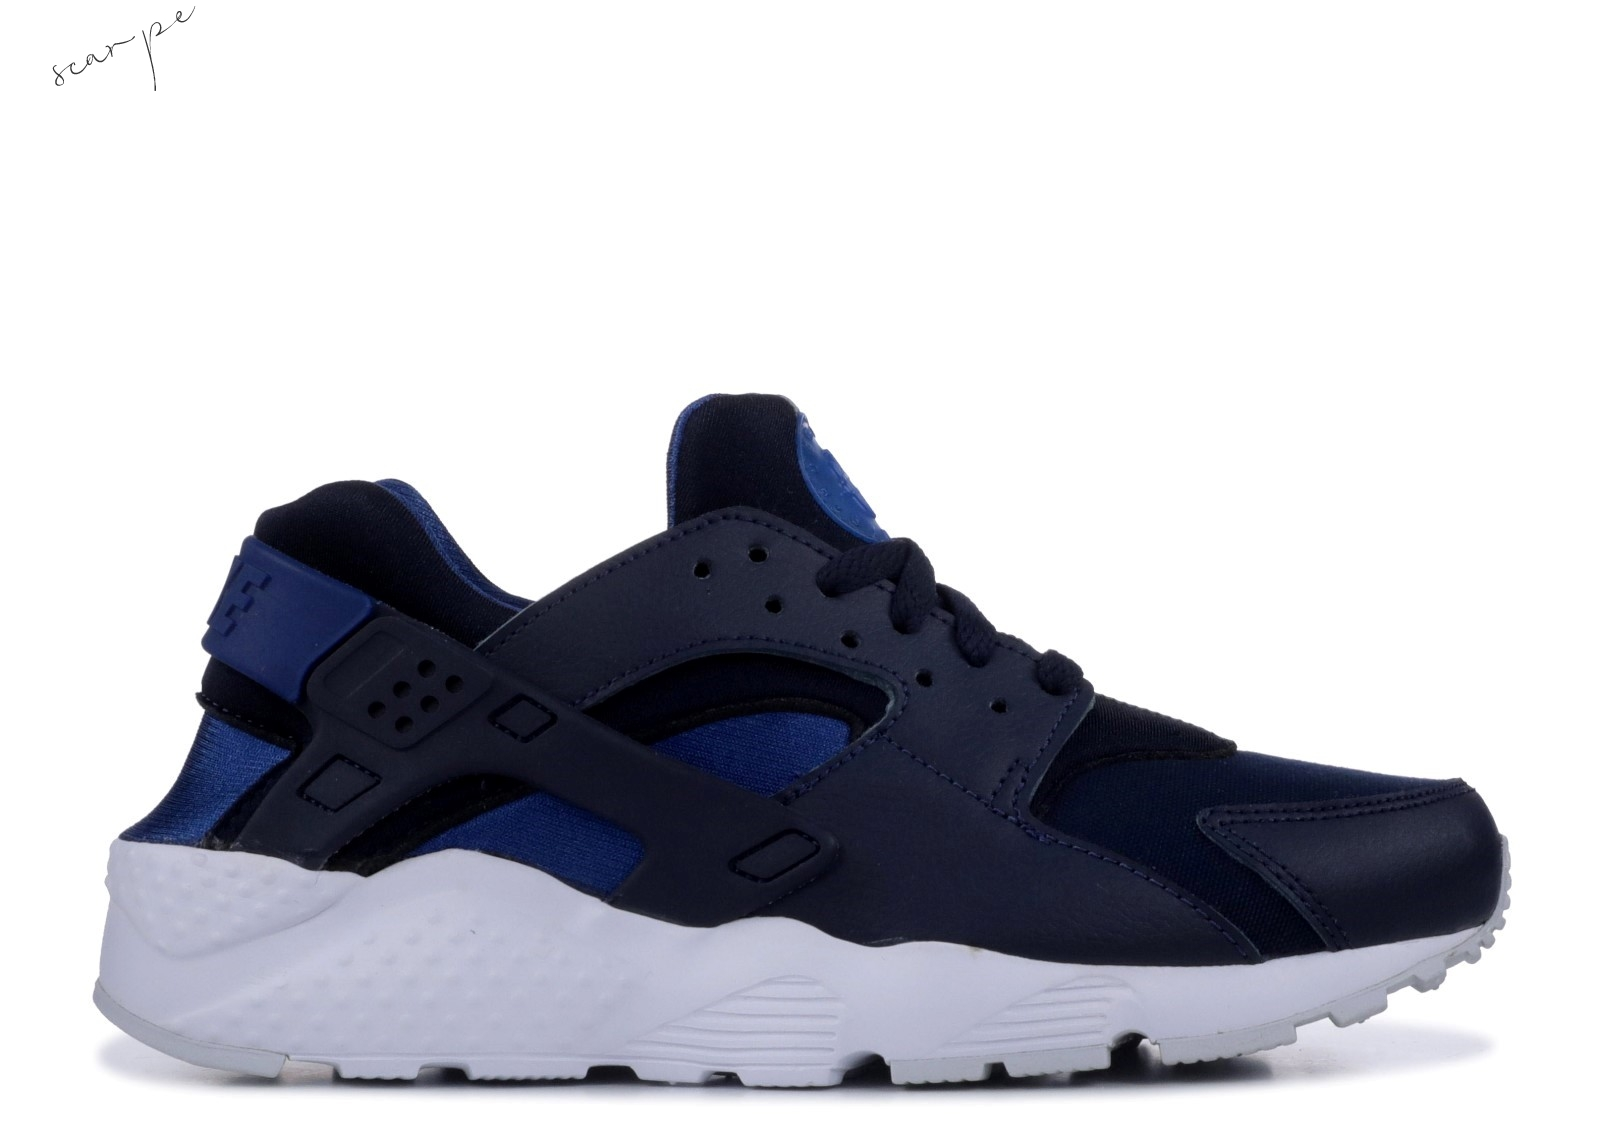 Vendite Nike Air Huarache Run (Gs) Navy (654275-414) Scarpe Online